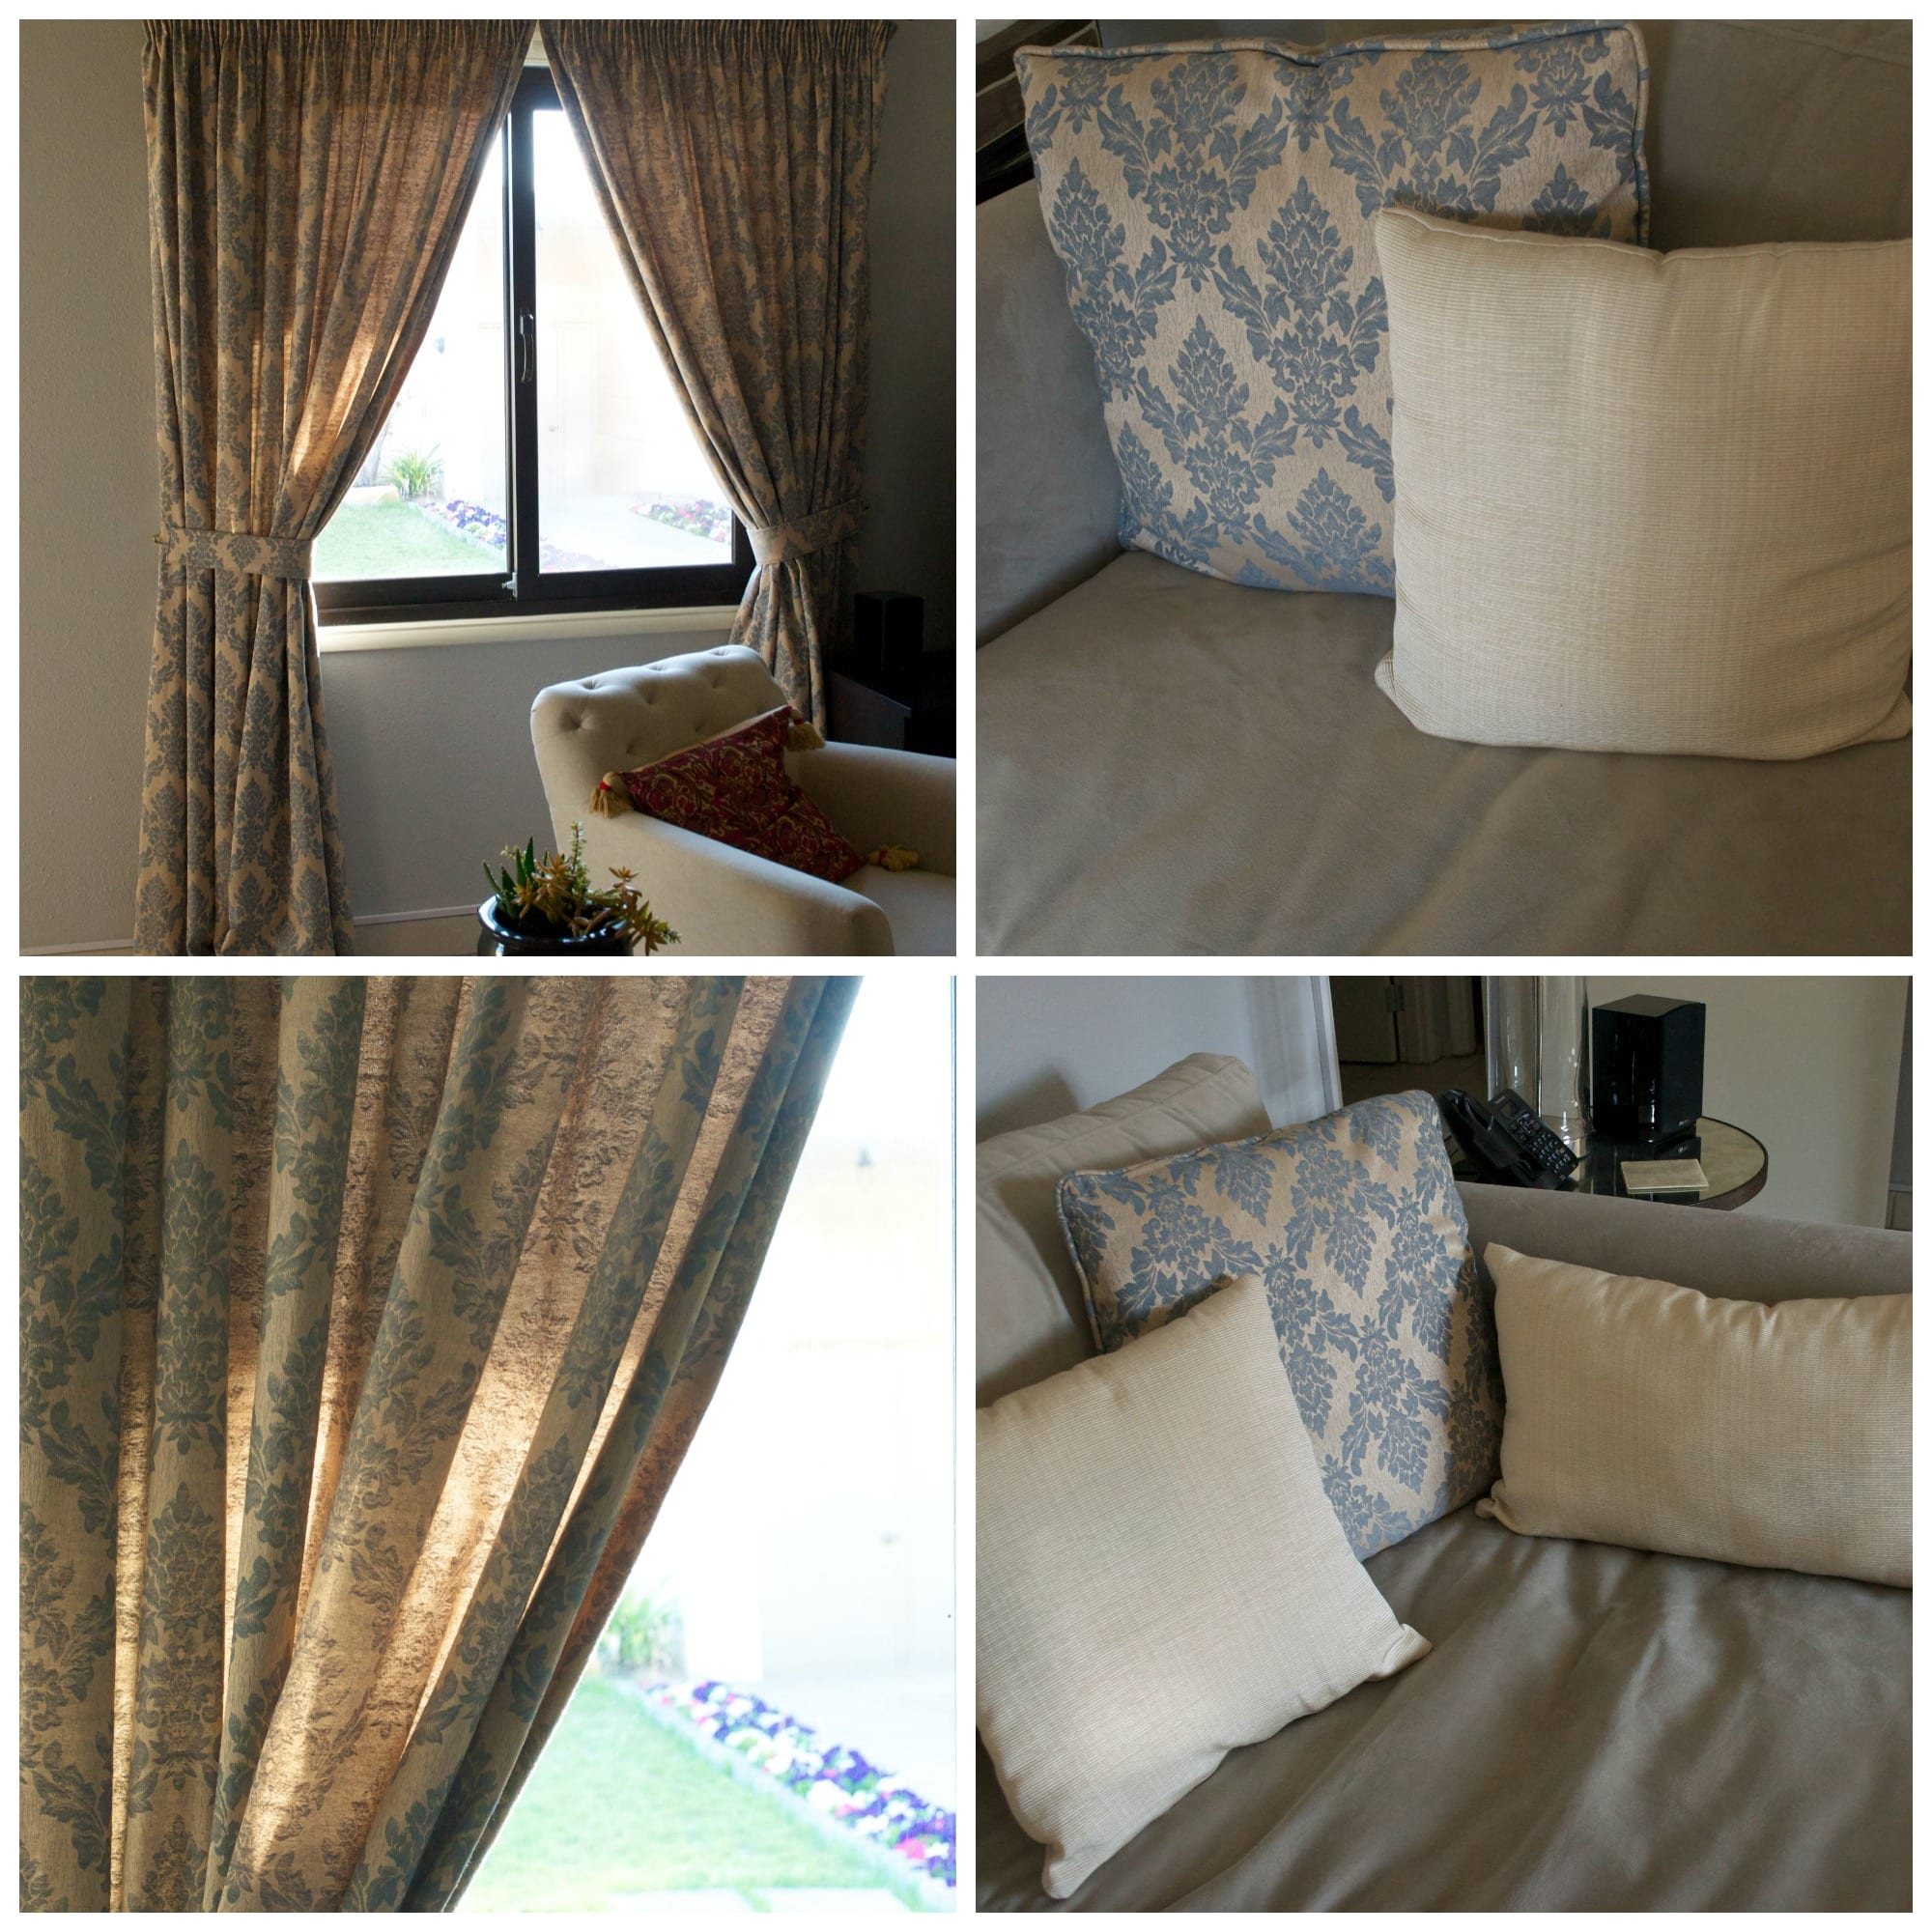 Curtain and pillow Collage